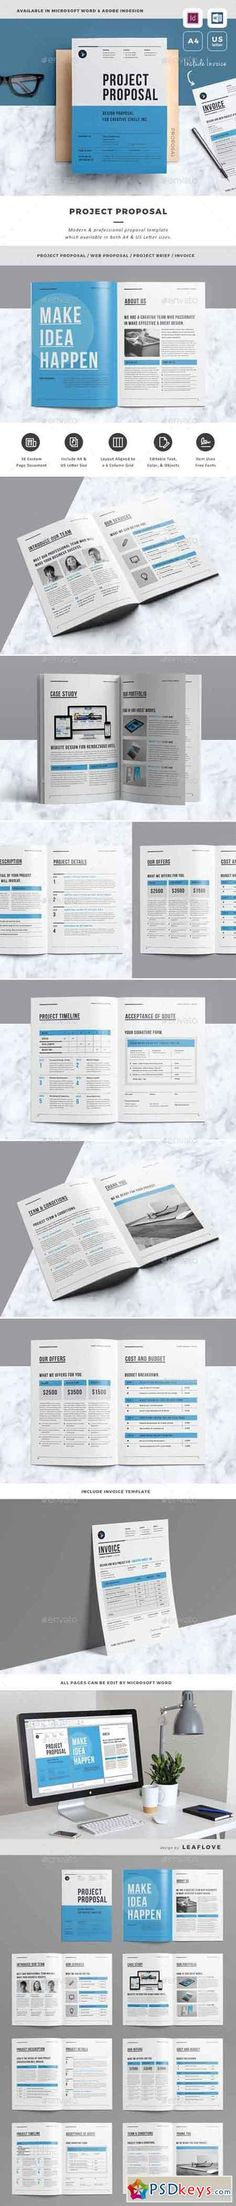 Business Project Proposal Template-V280 Project proposal - purchase proposal templates